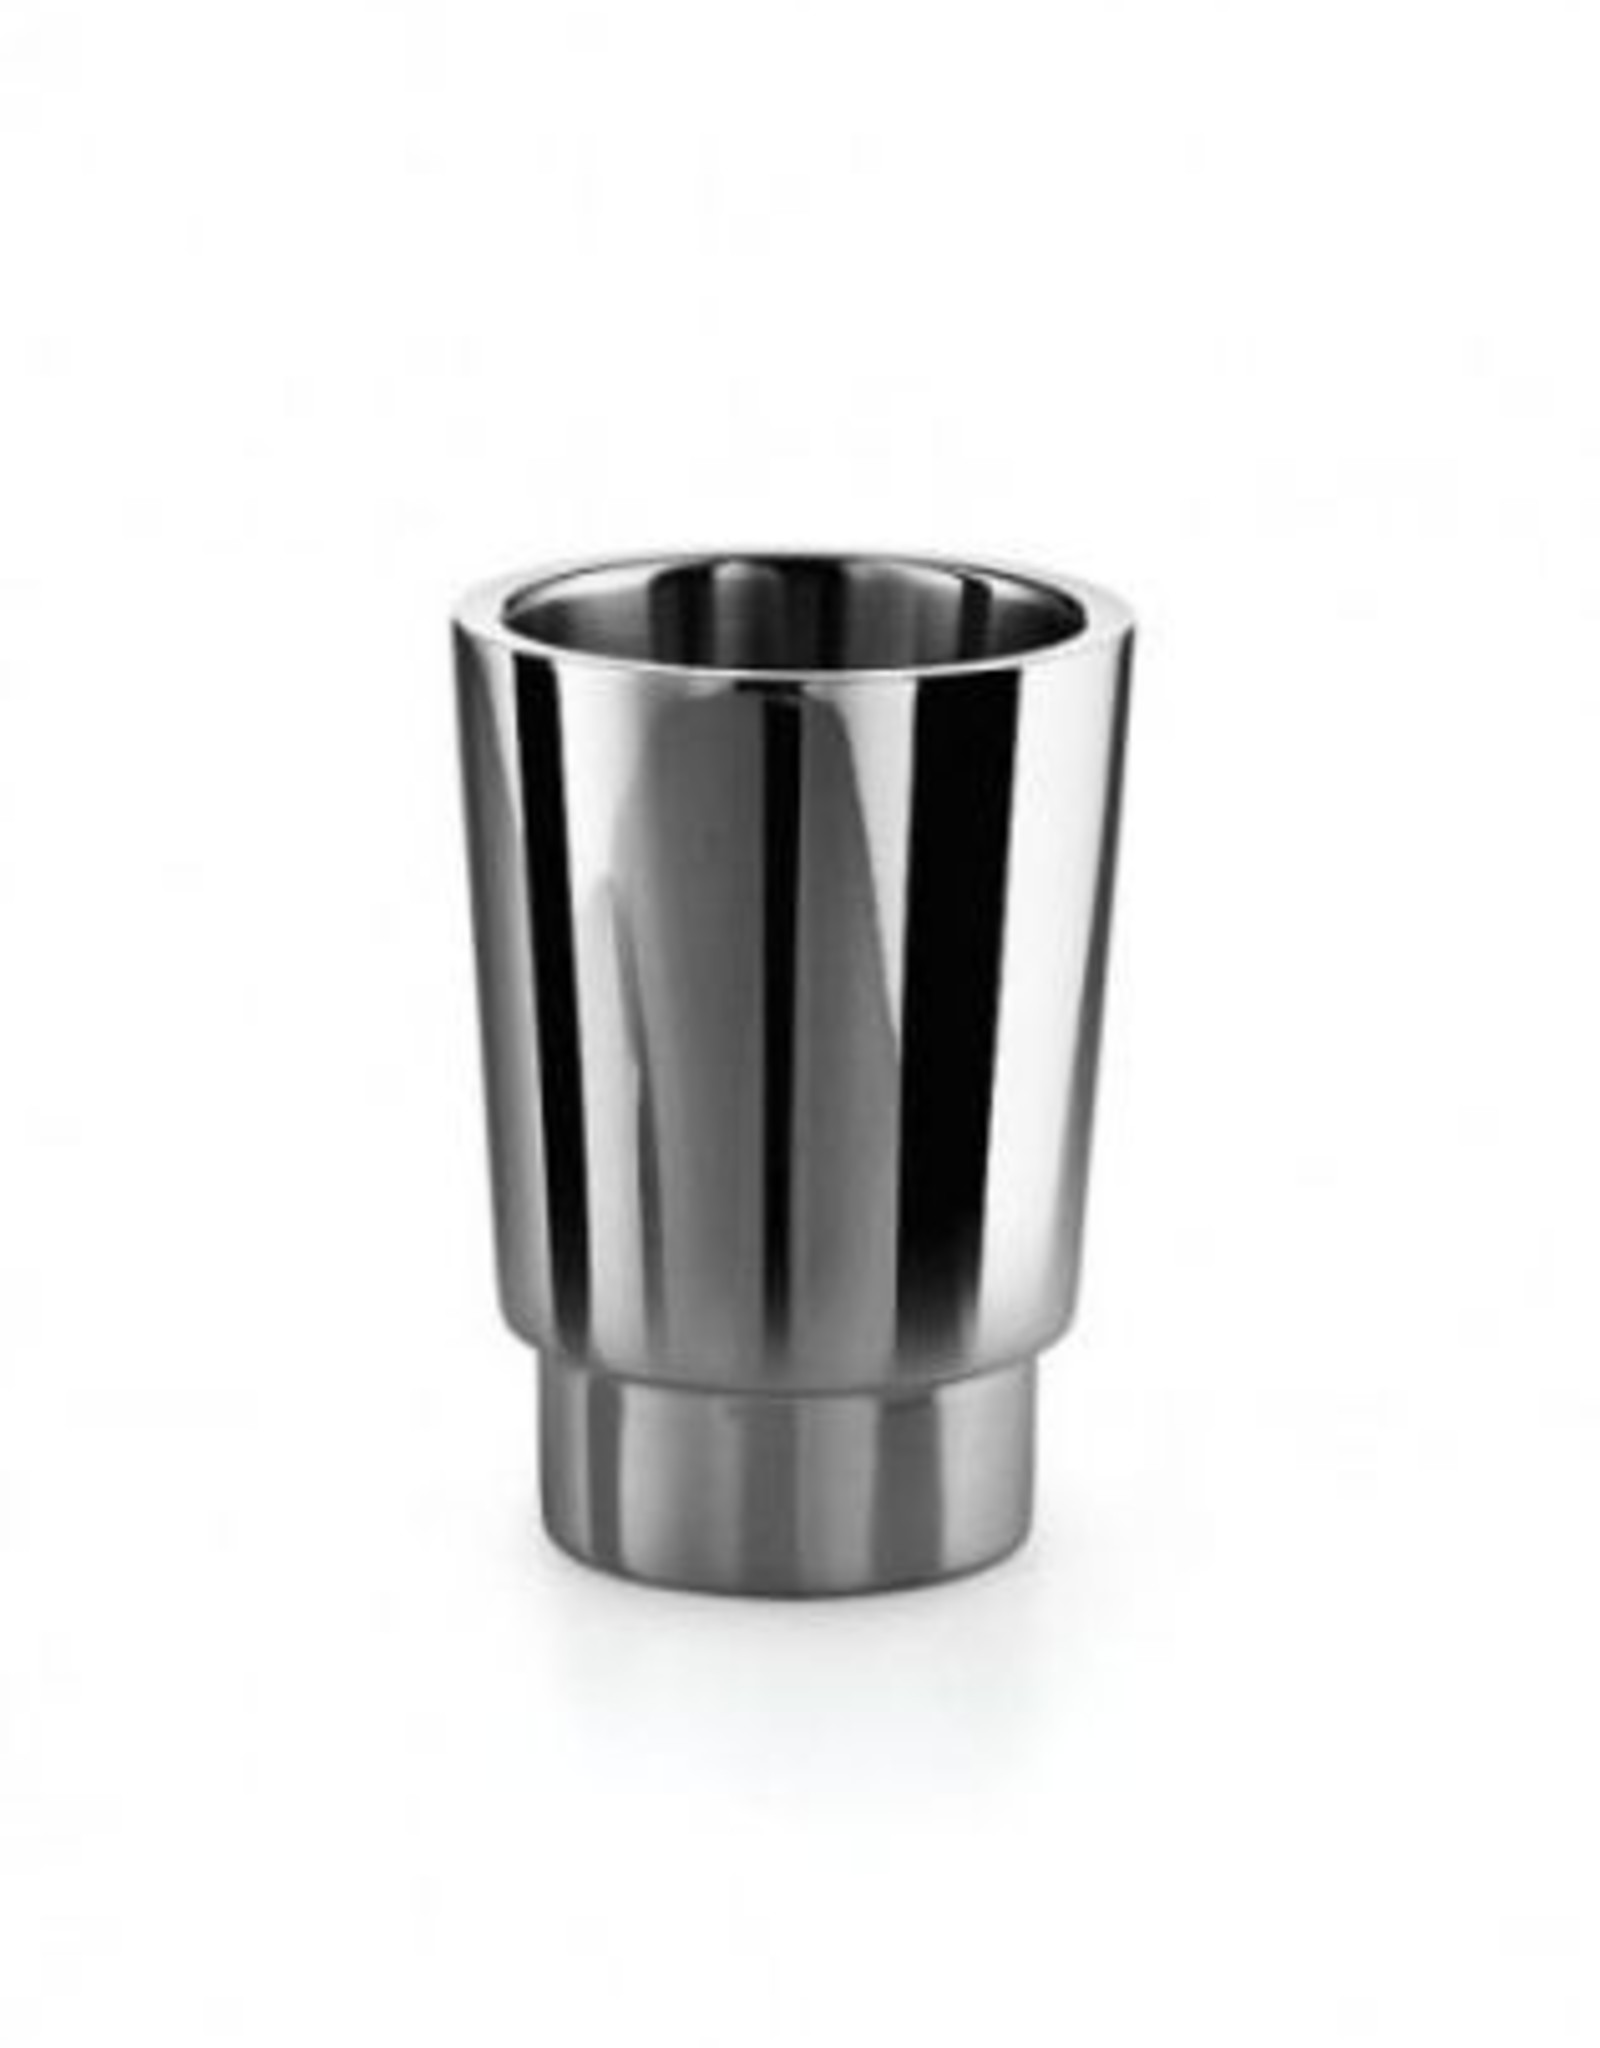 Napie Napie cup for wall holder, polished stainless steel